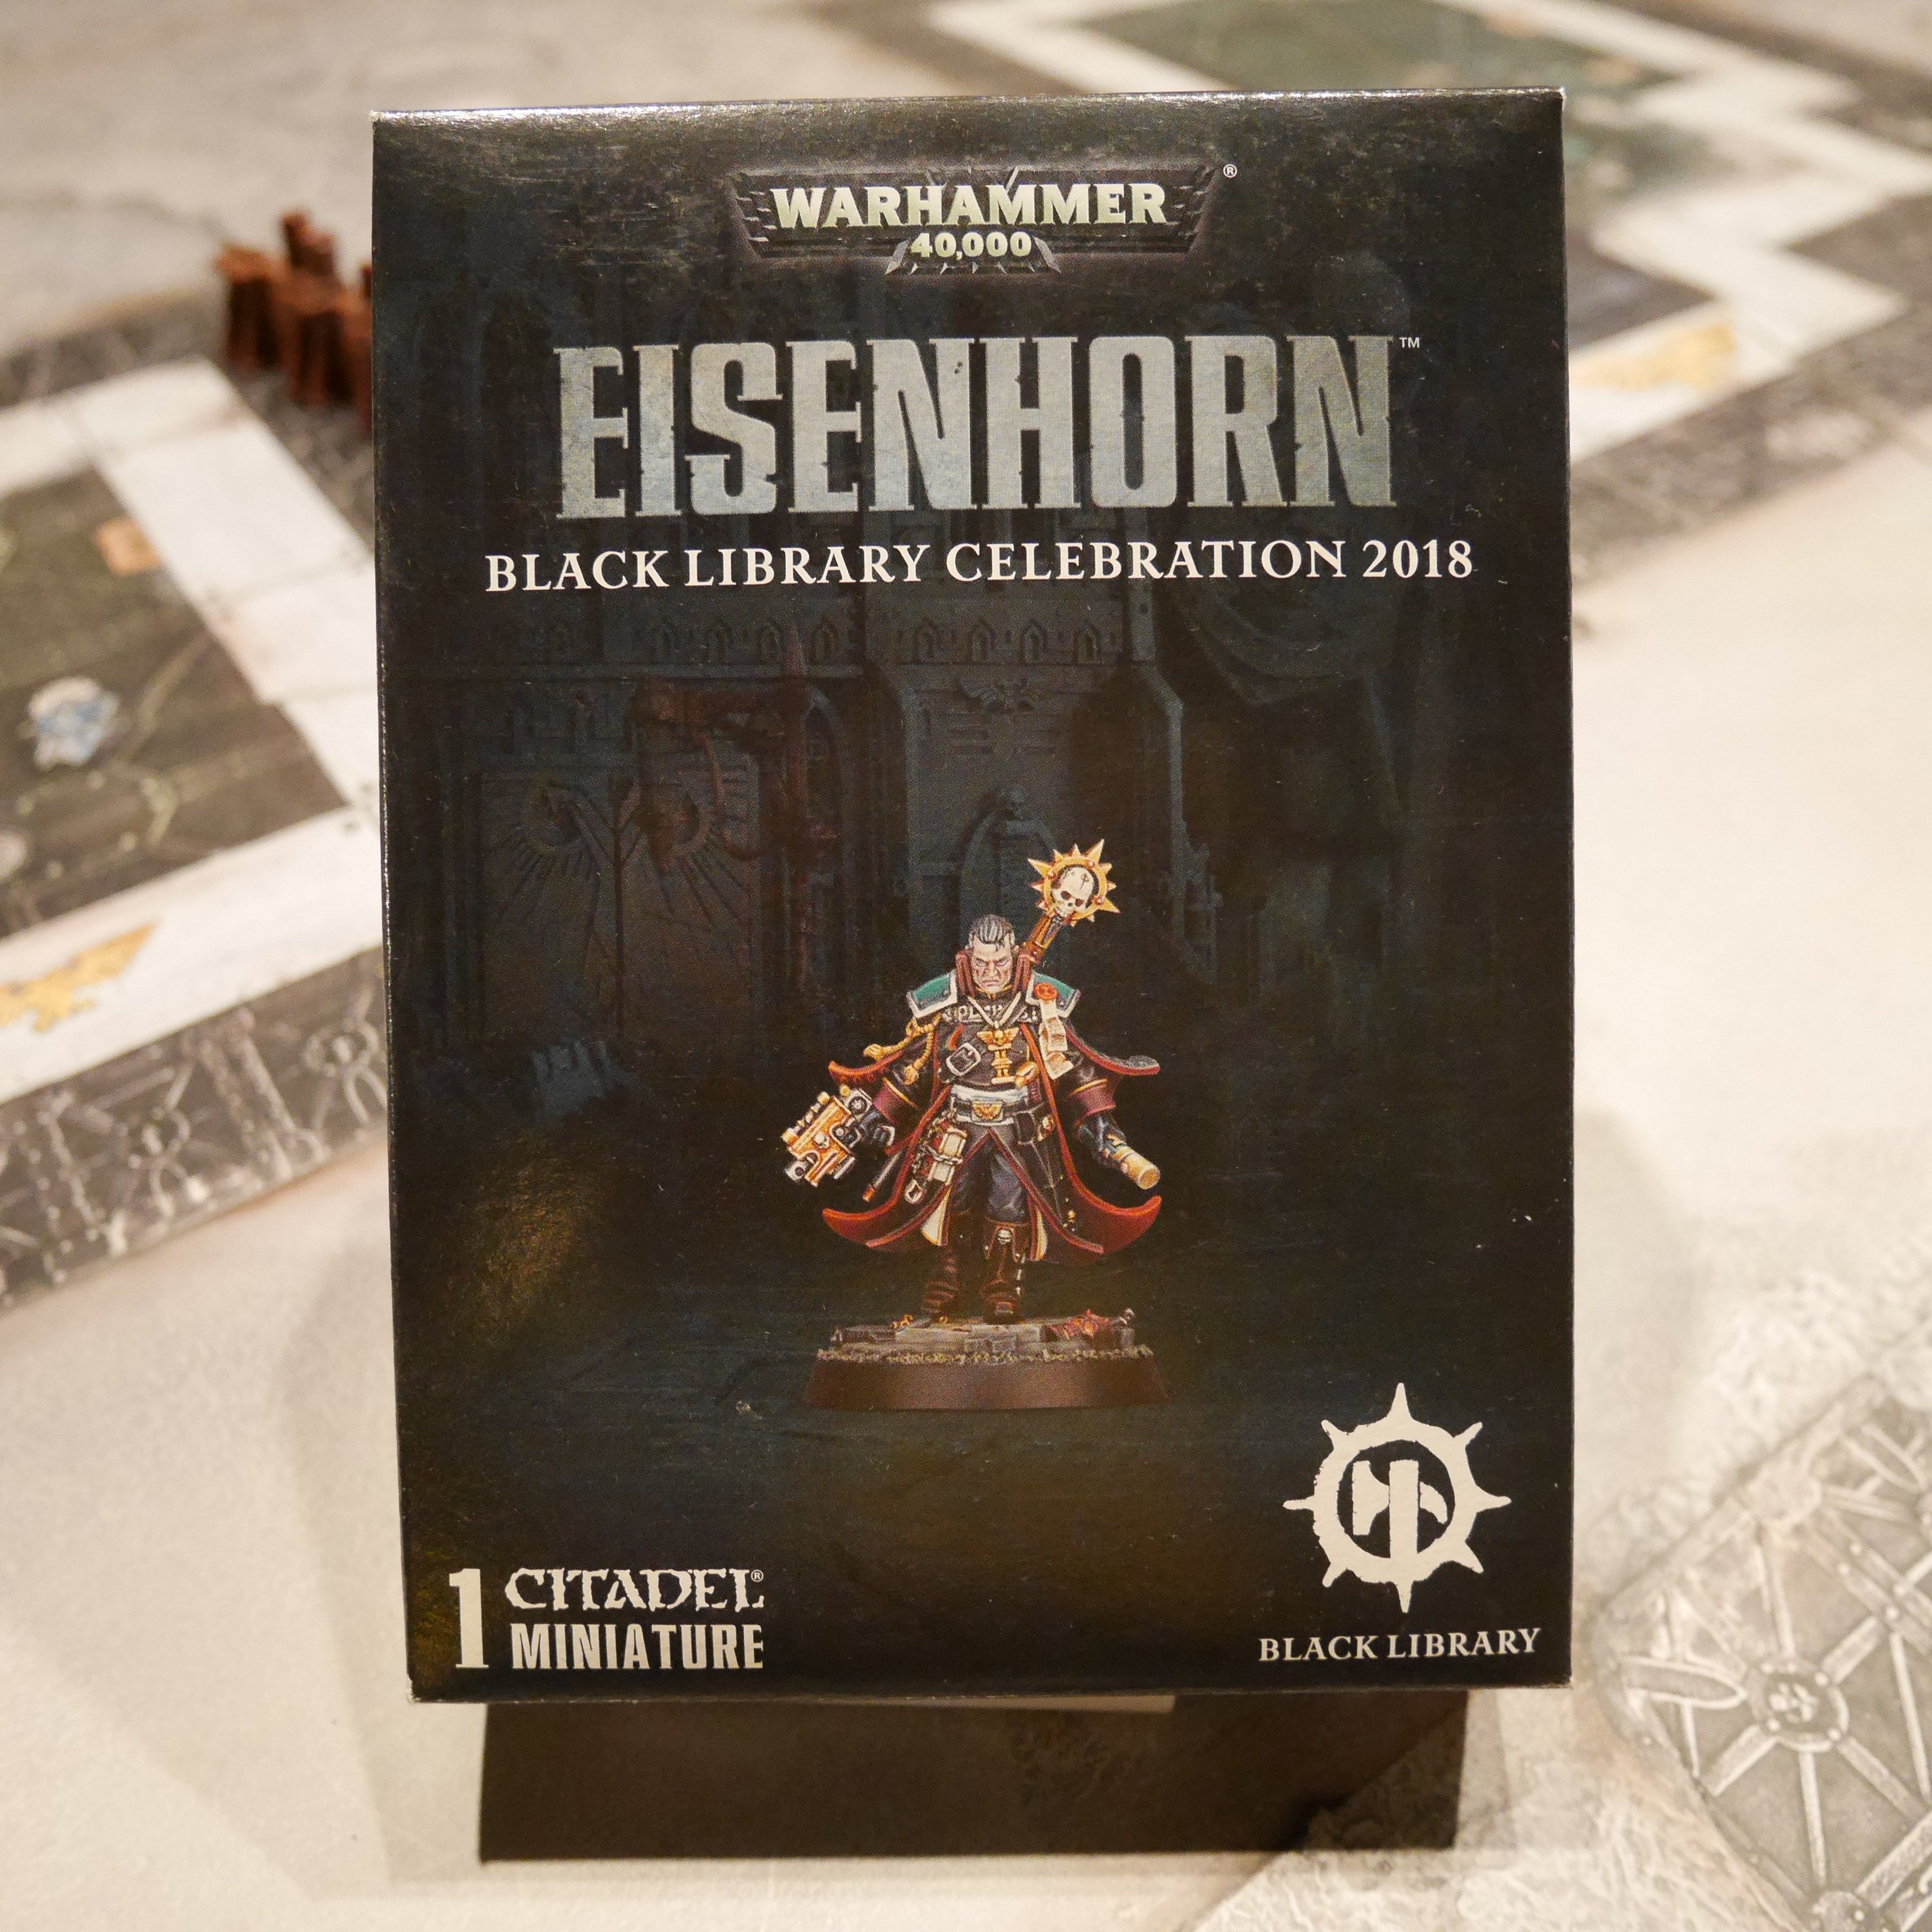 EISENHORN BLACK LIBRARY CELEBRATION 2018